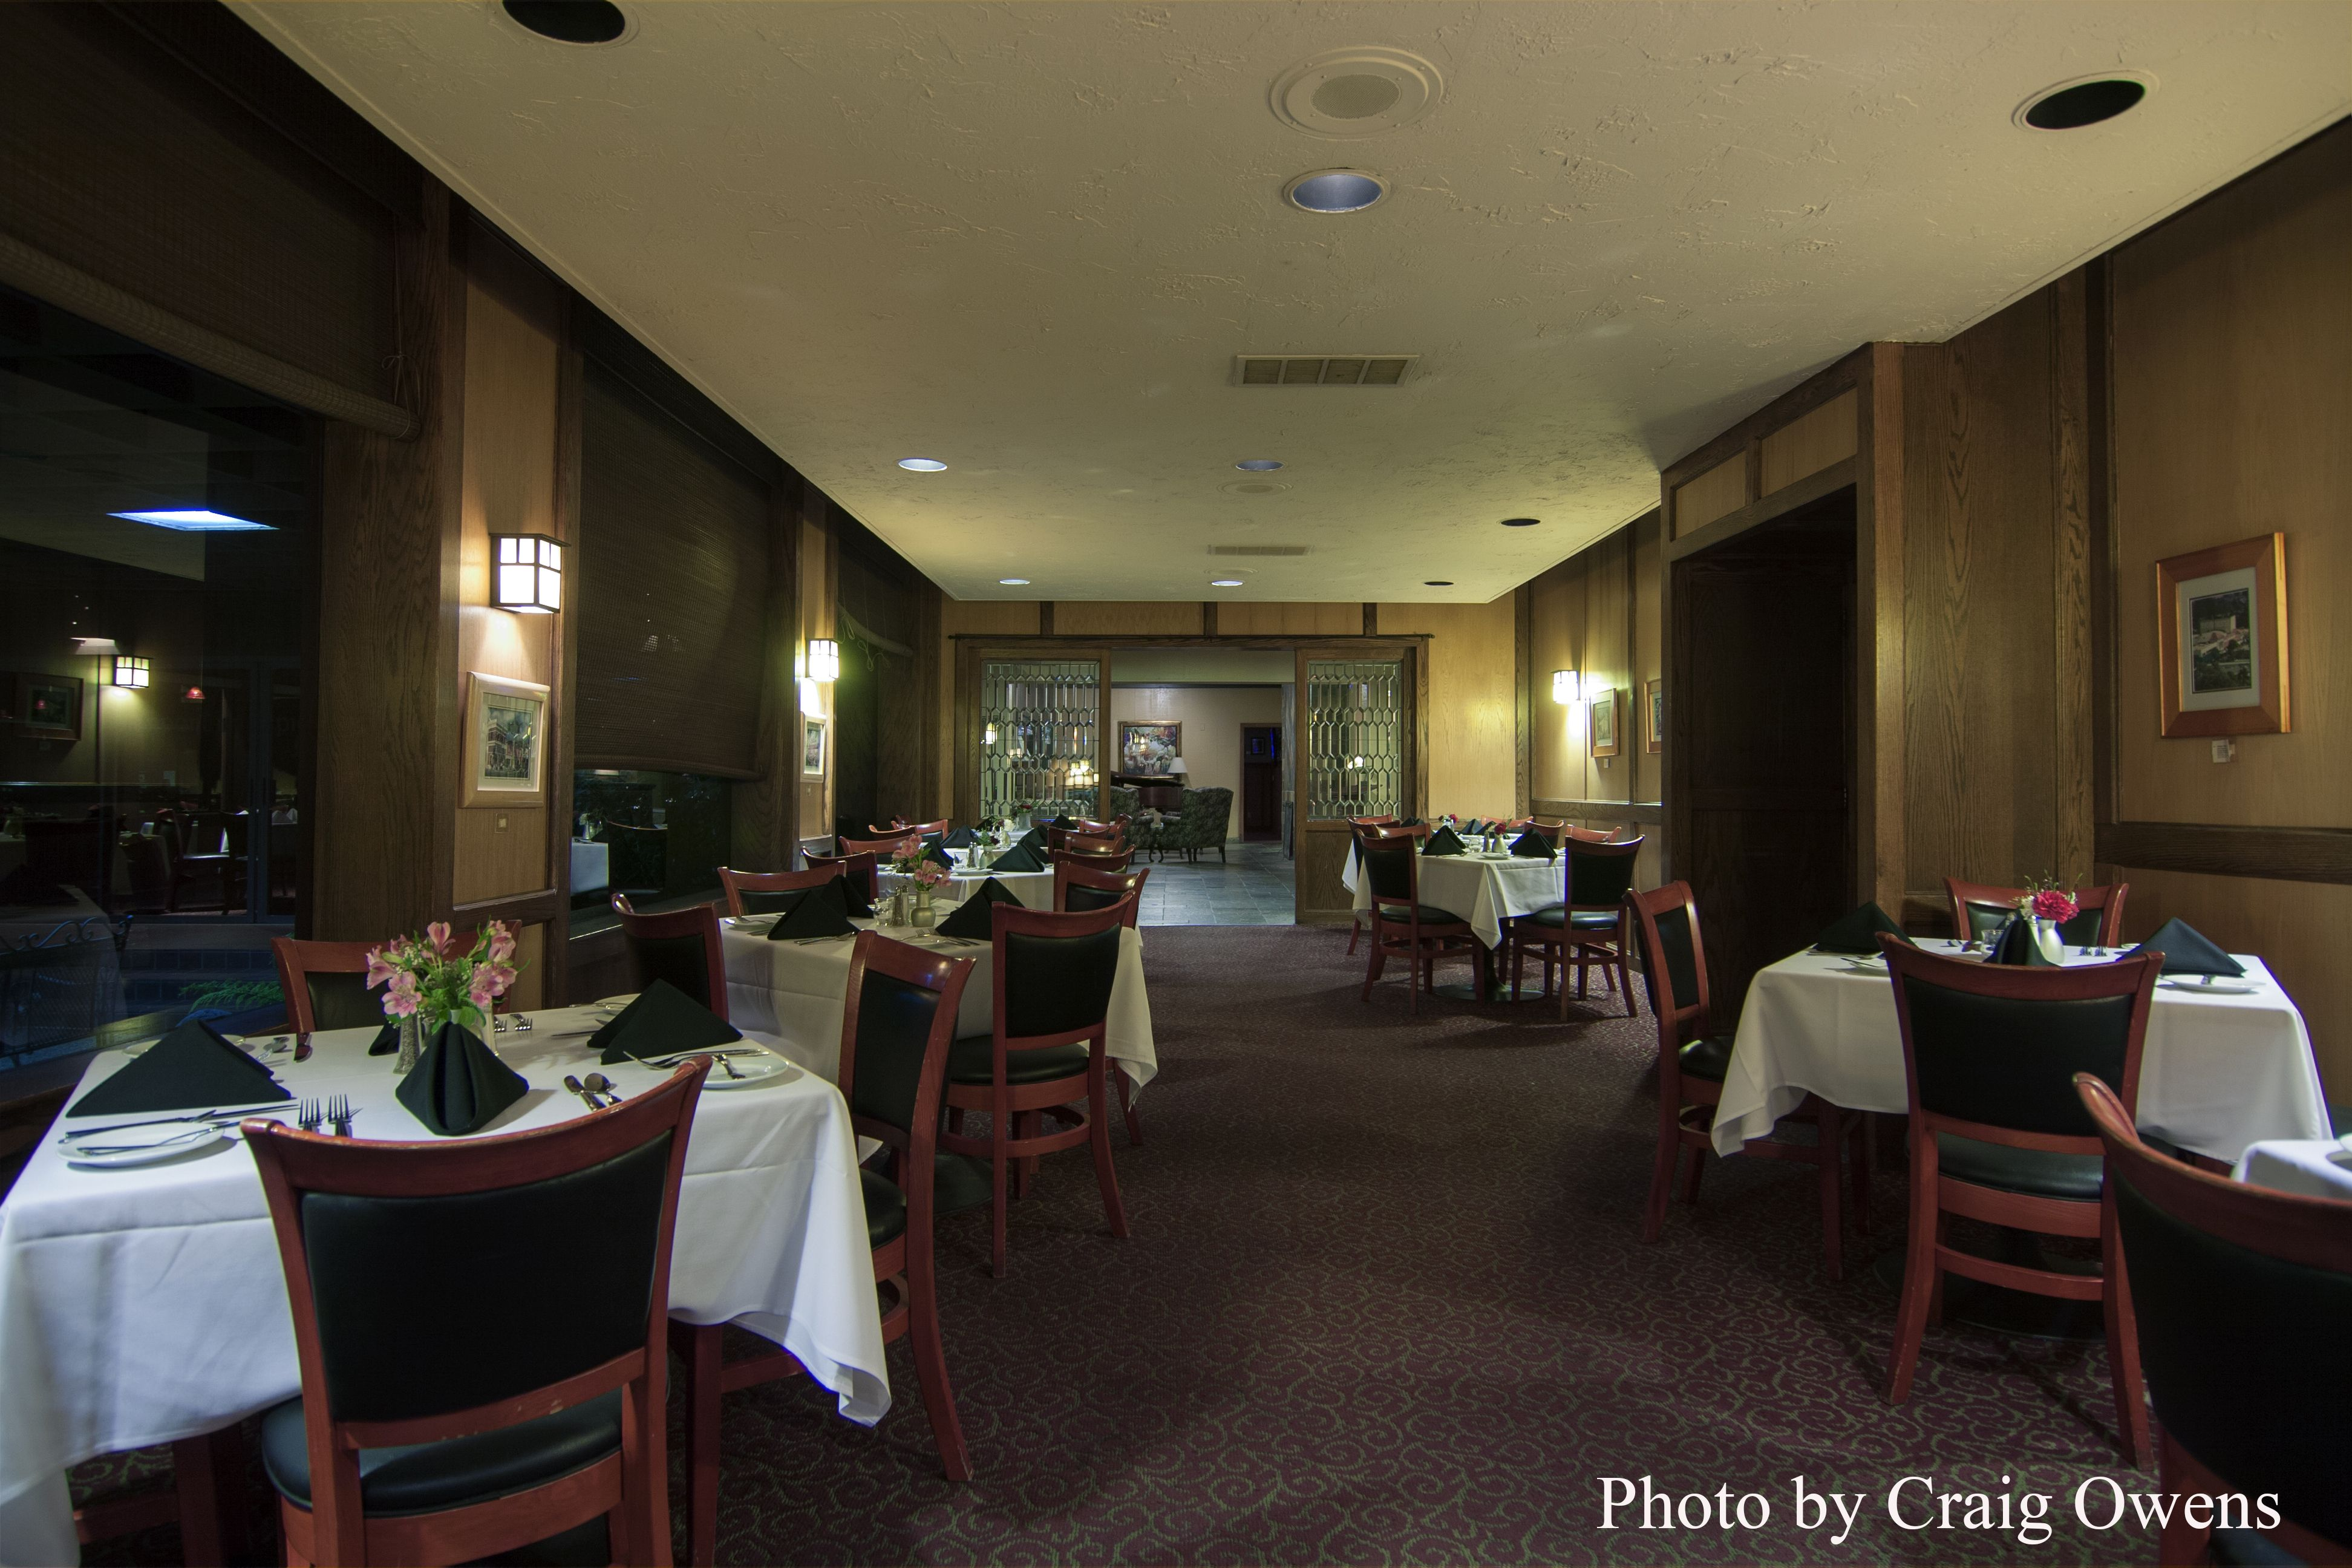 The dining room of the Pierpont Inn in Ventura, California ...